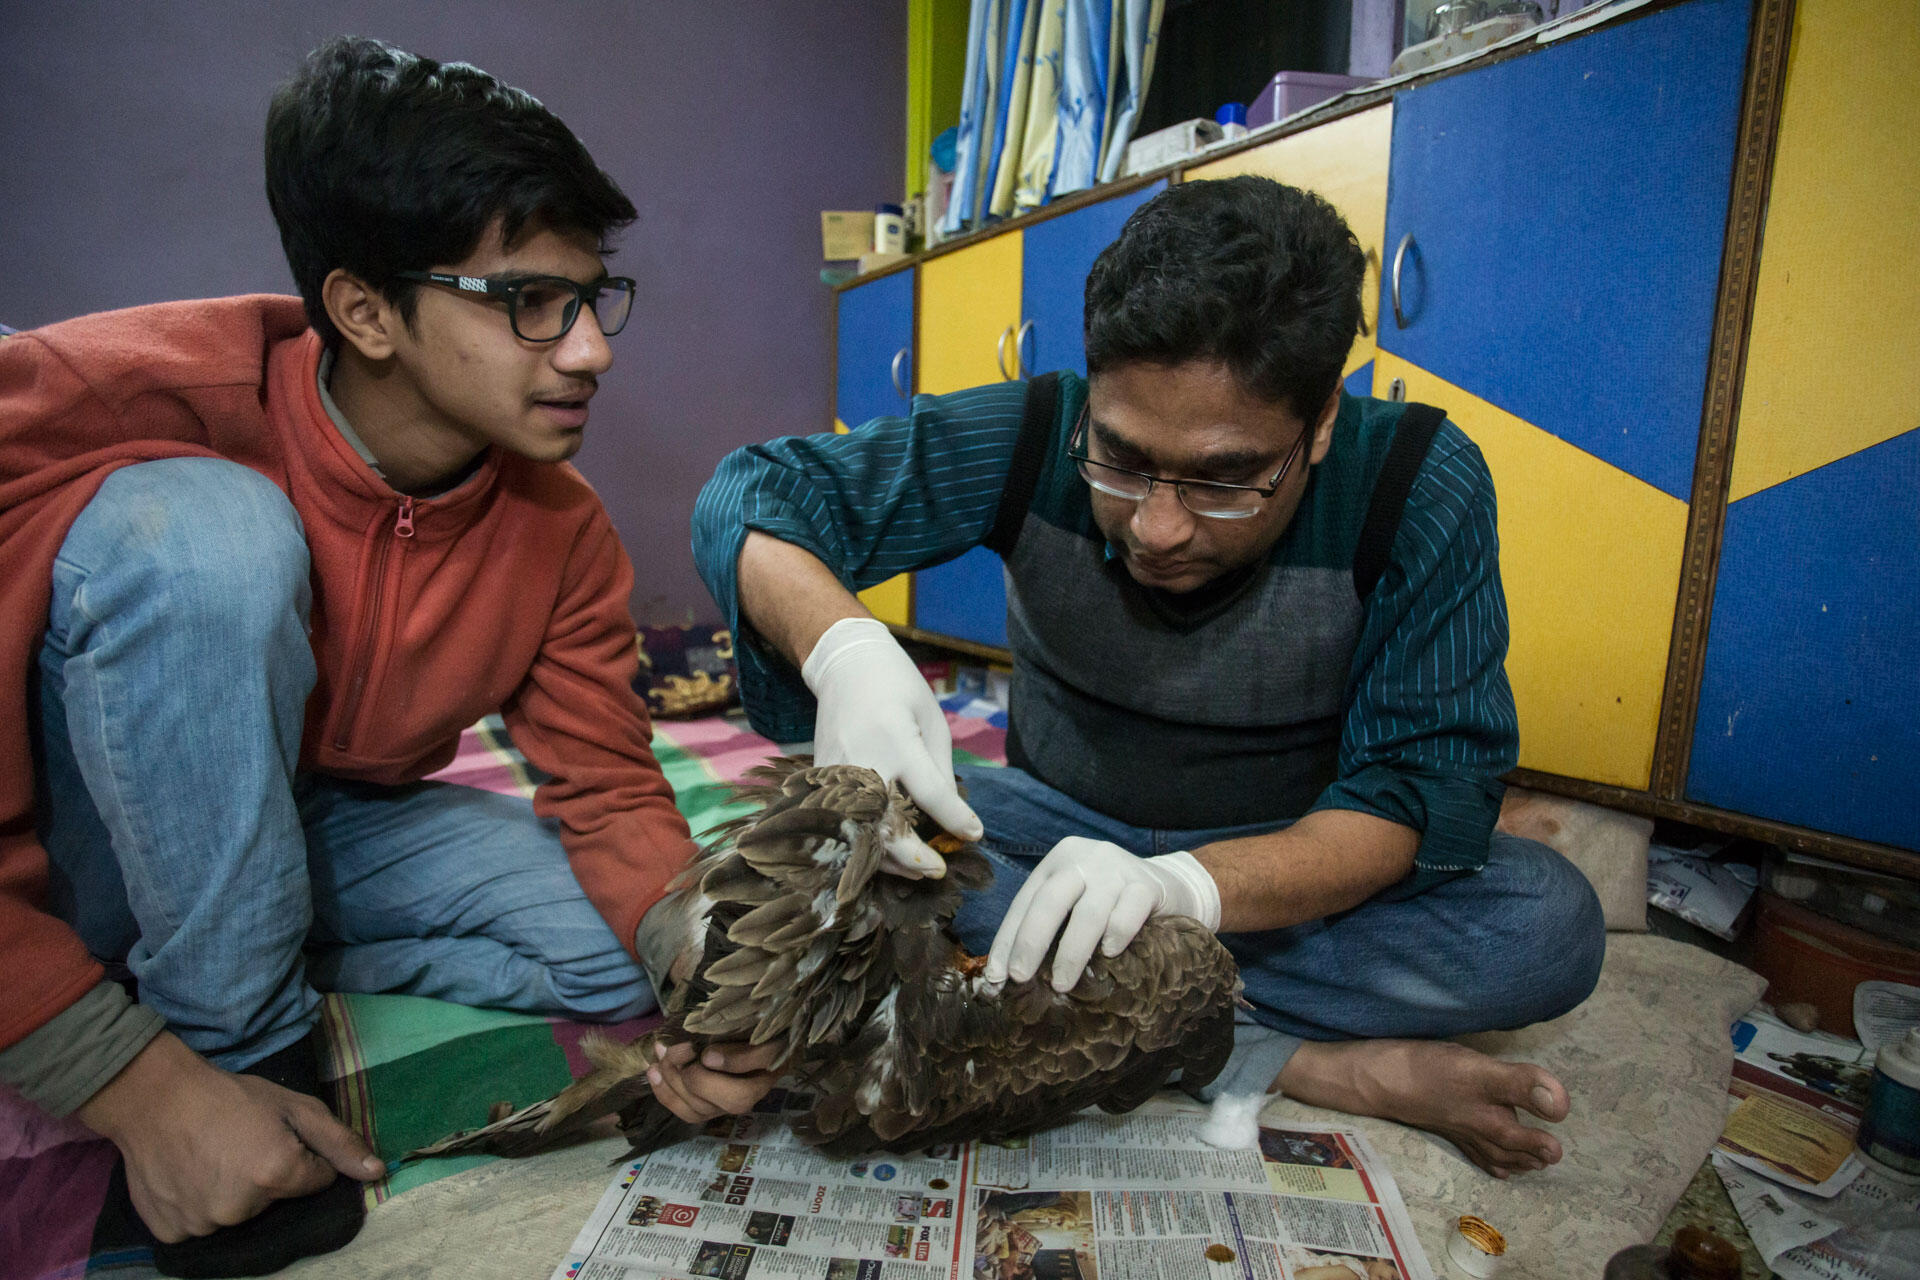 Nadeem Sherzhad and his assistant, Mohammed Farman, perform surgery on the rescued kite. Luke Massey